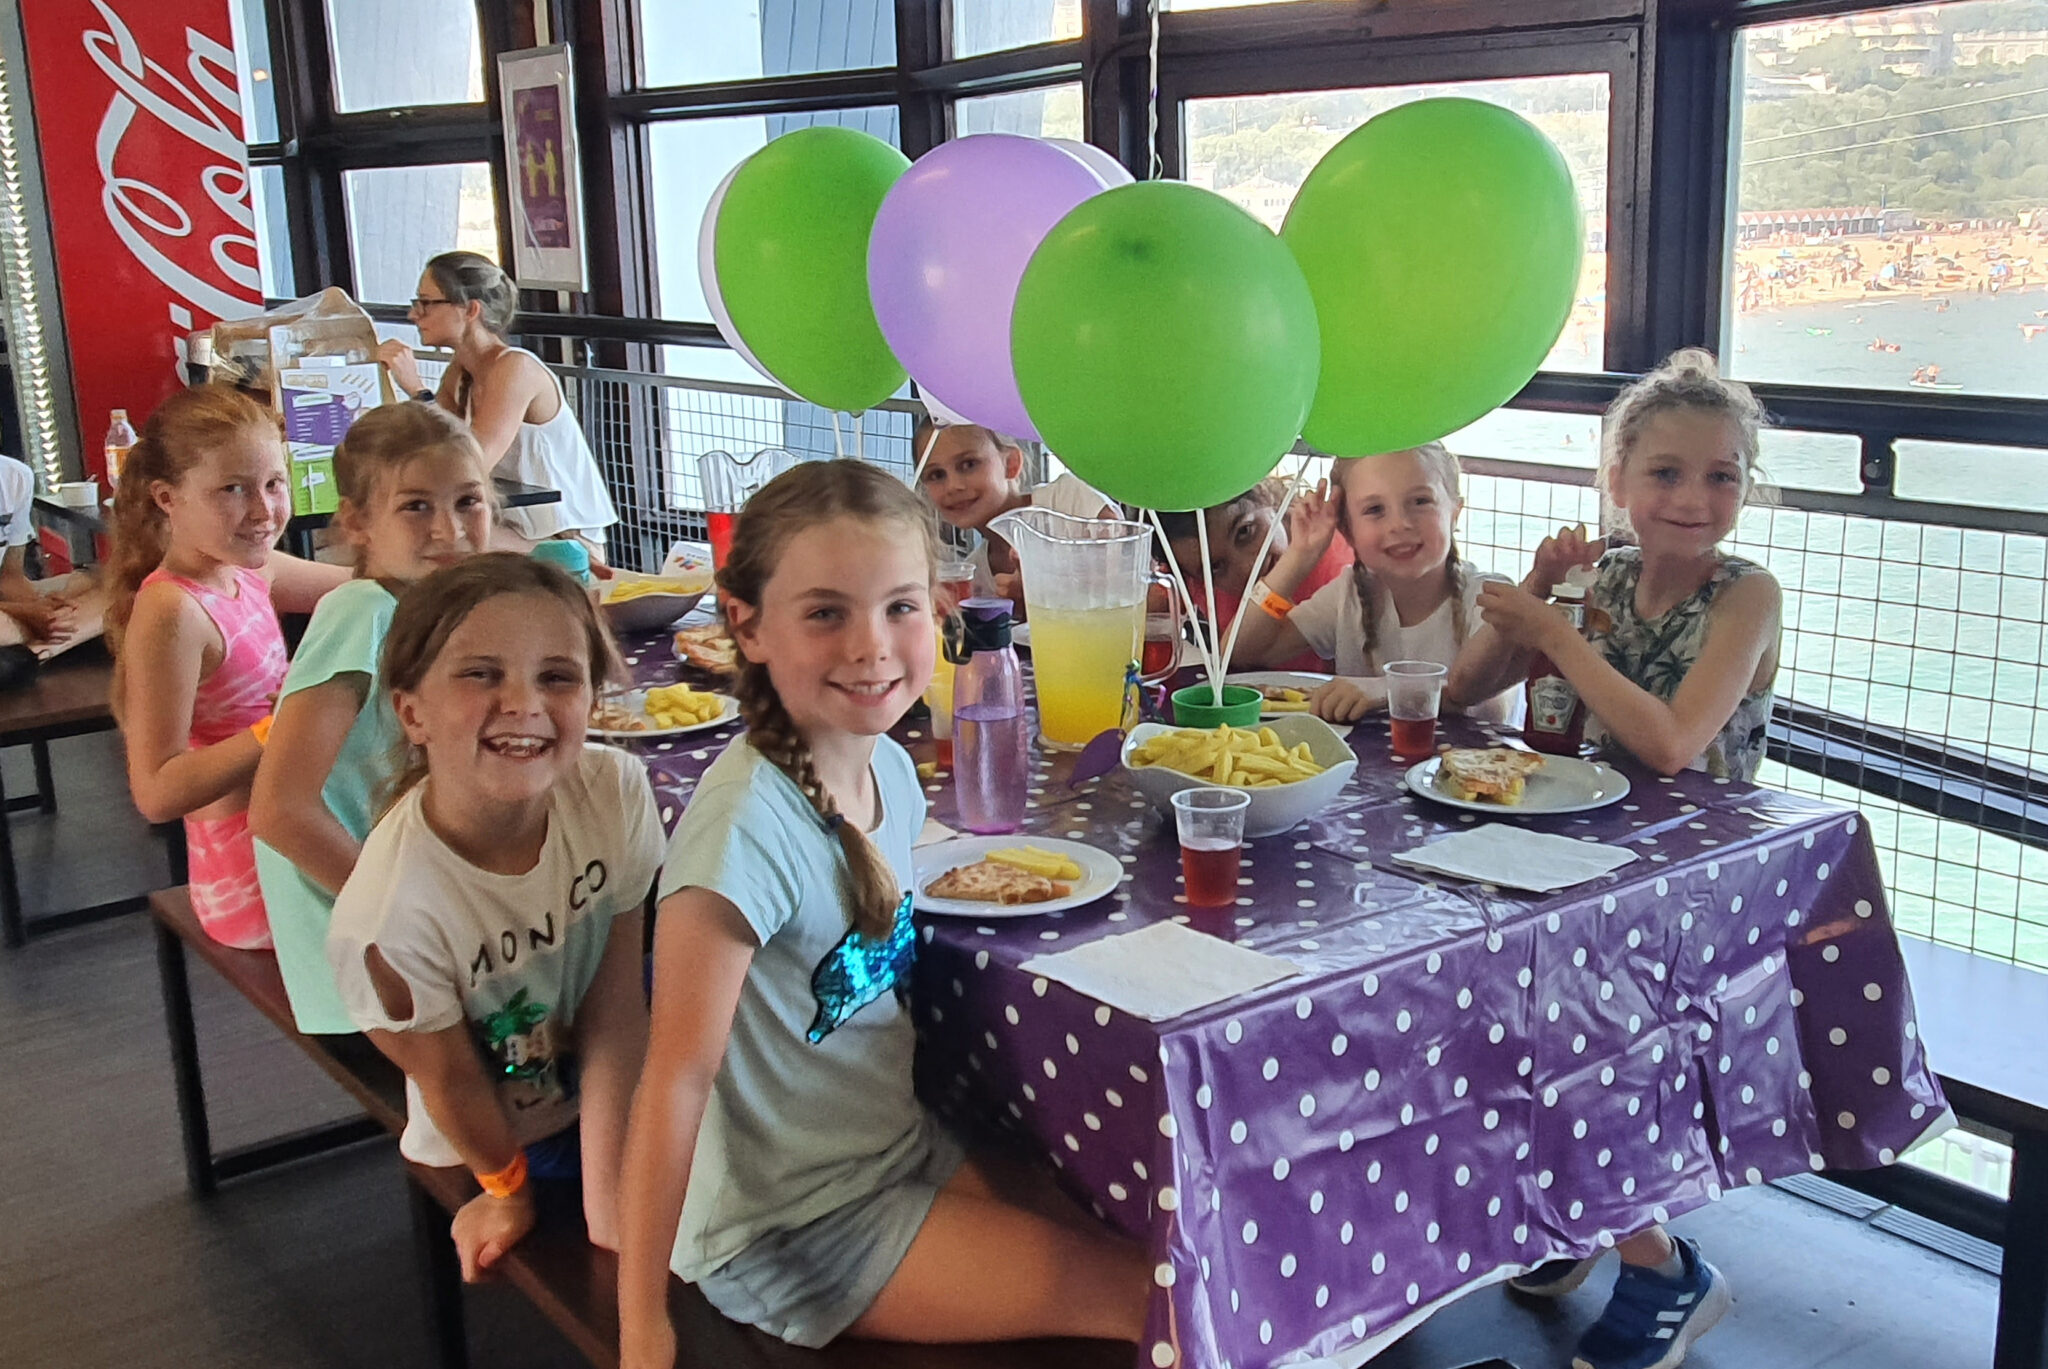 Girls Birthday Party in RockReef Cafe with Food & Balloons